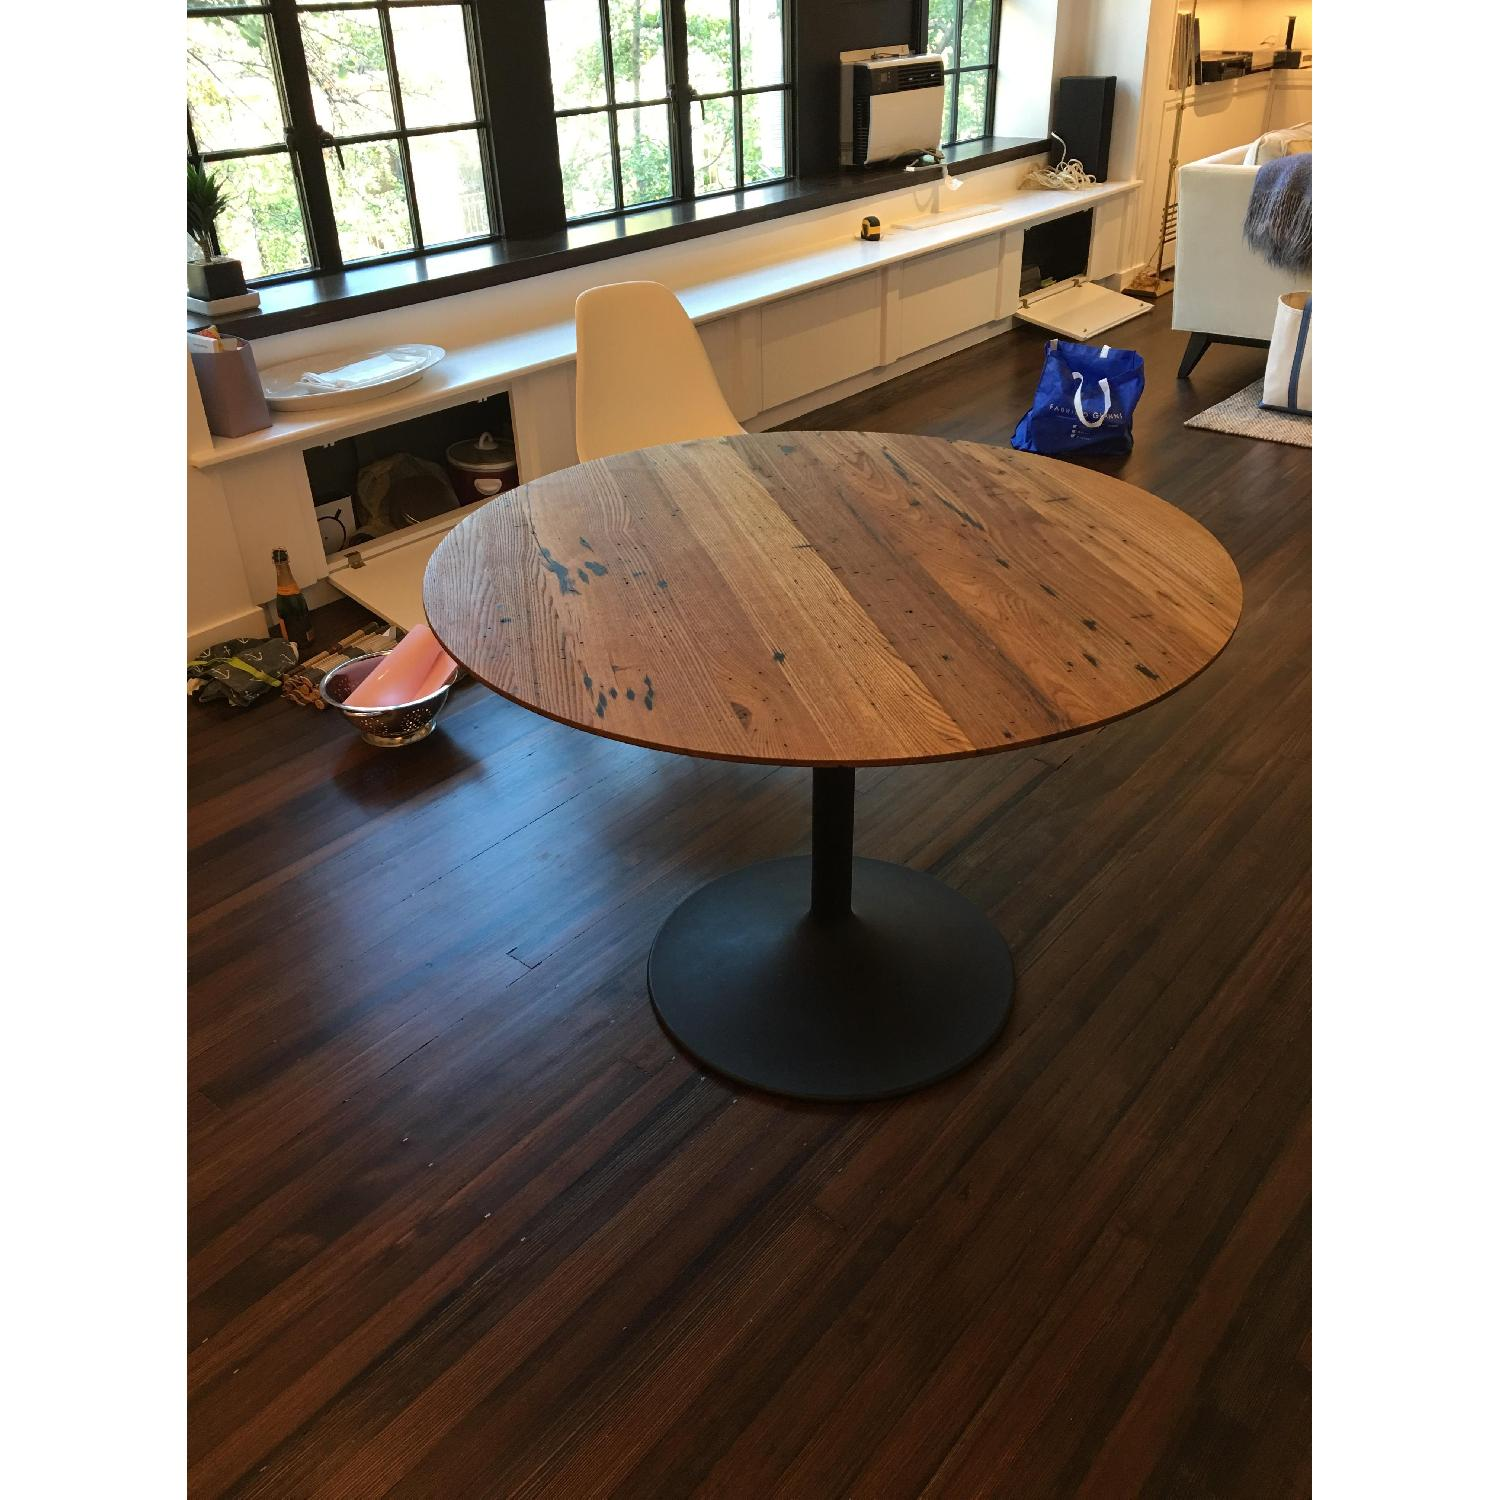 Room & Board Aria Reclaimed Chestnut Wood Dining Table - image-3